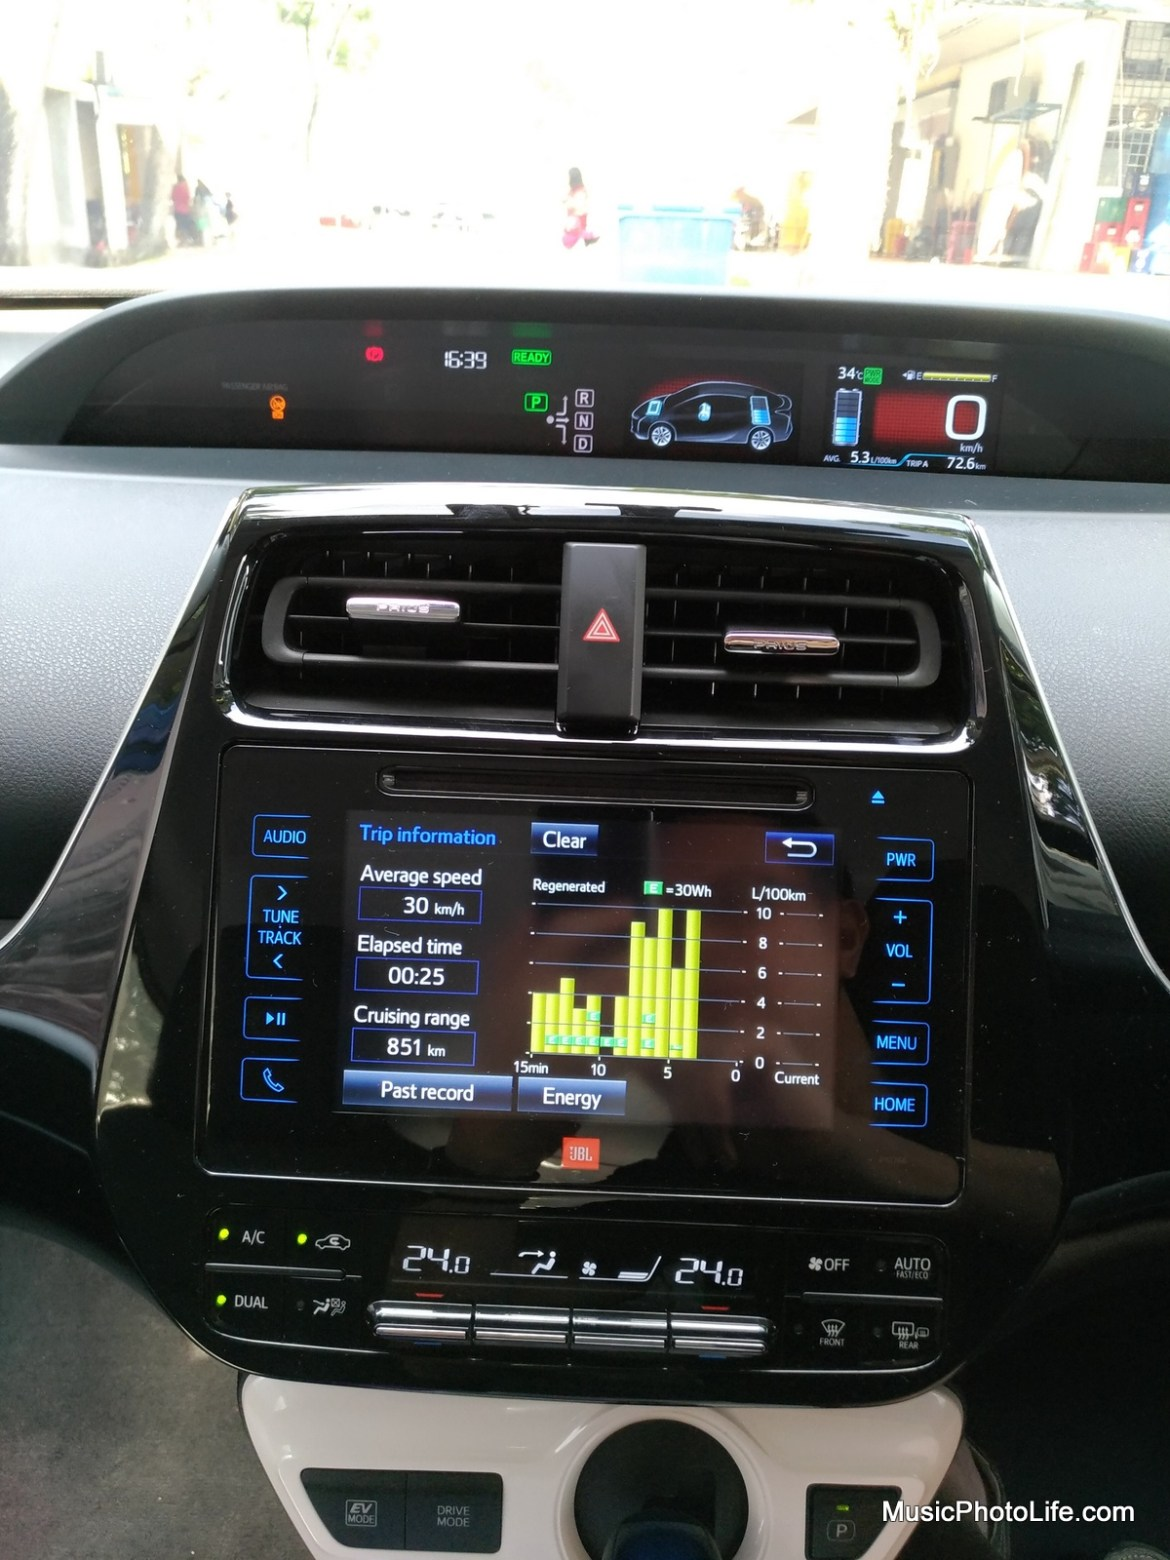 Toyota Prius 2016 multi-information display